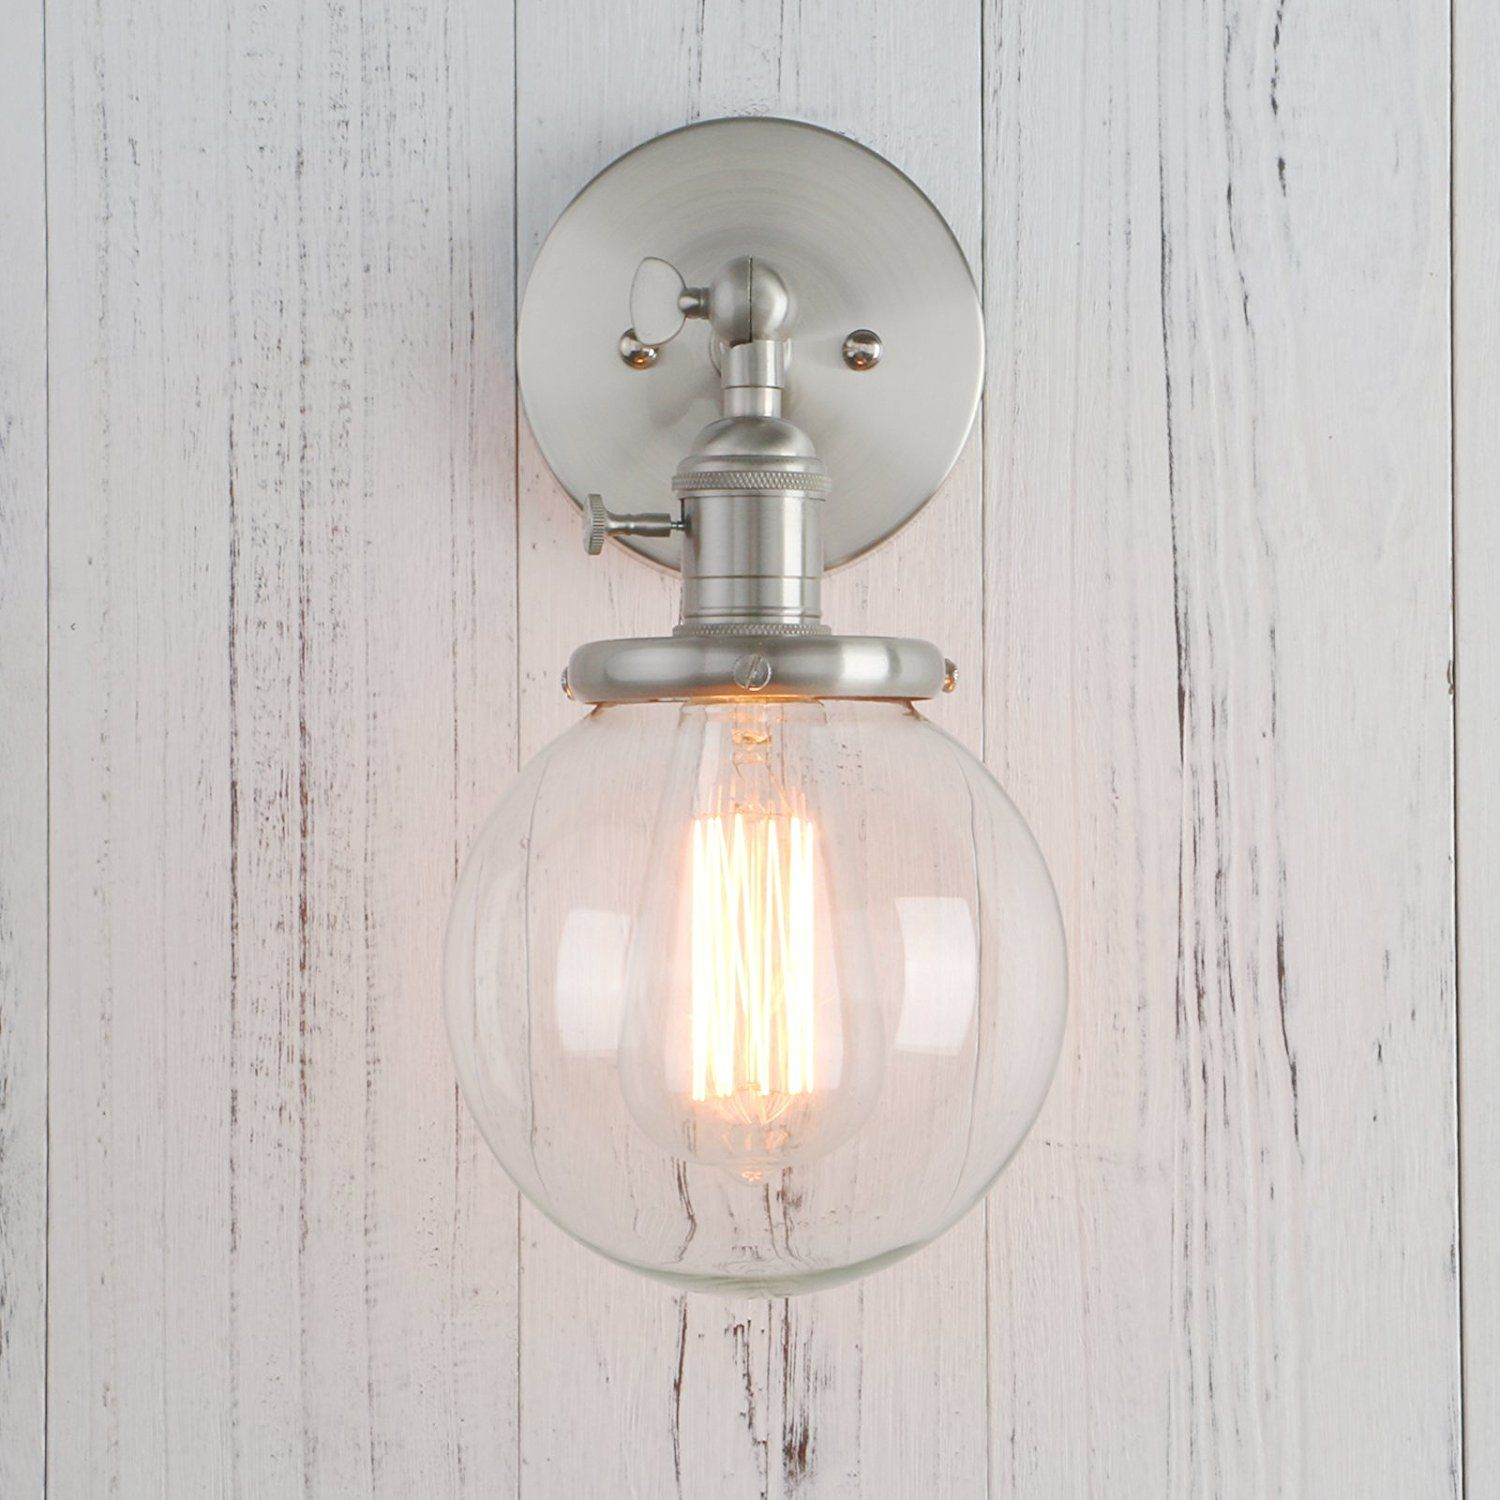 Amazon permo vintage industrial wall sconce lighting fixture amazon permo vintage industrial wall sconce lighting fixture with mini 59 round aloadofball Image collections